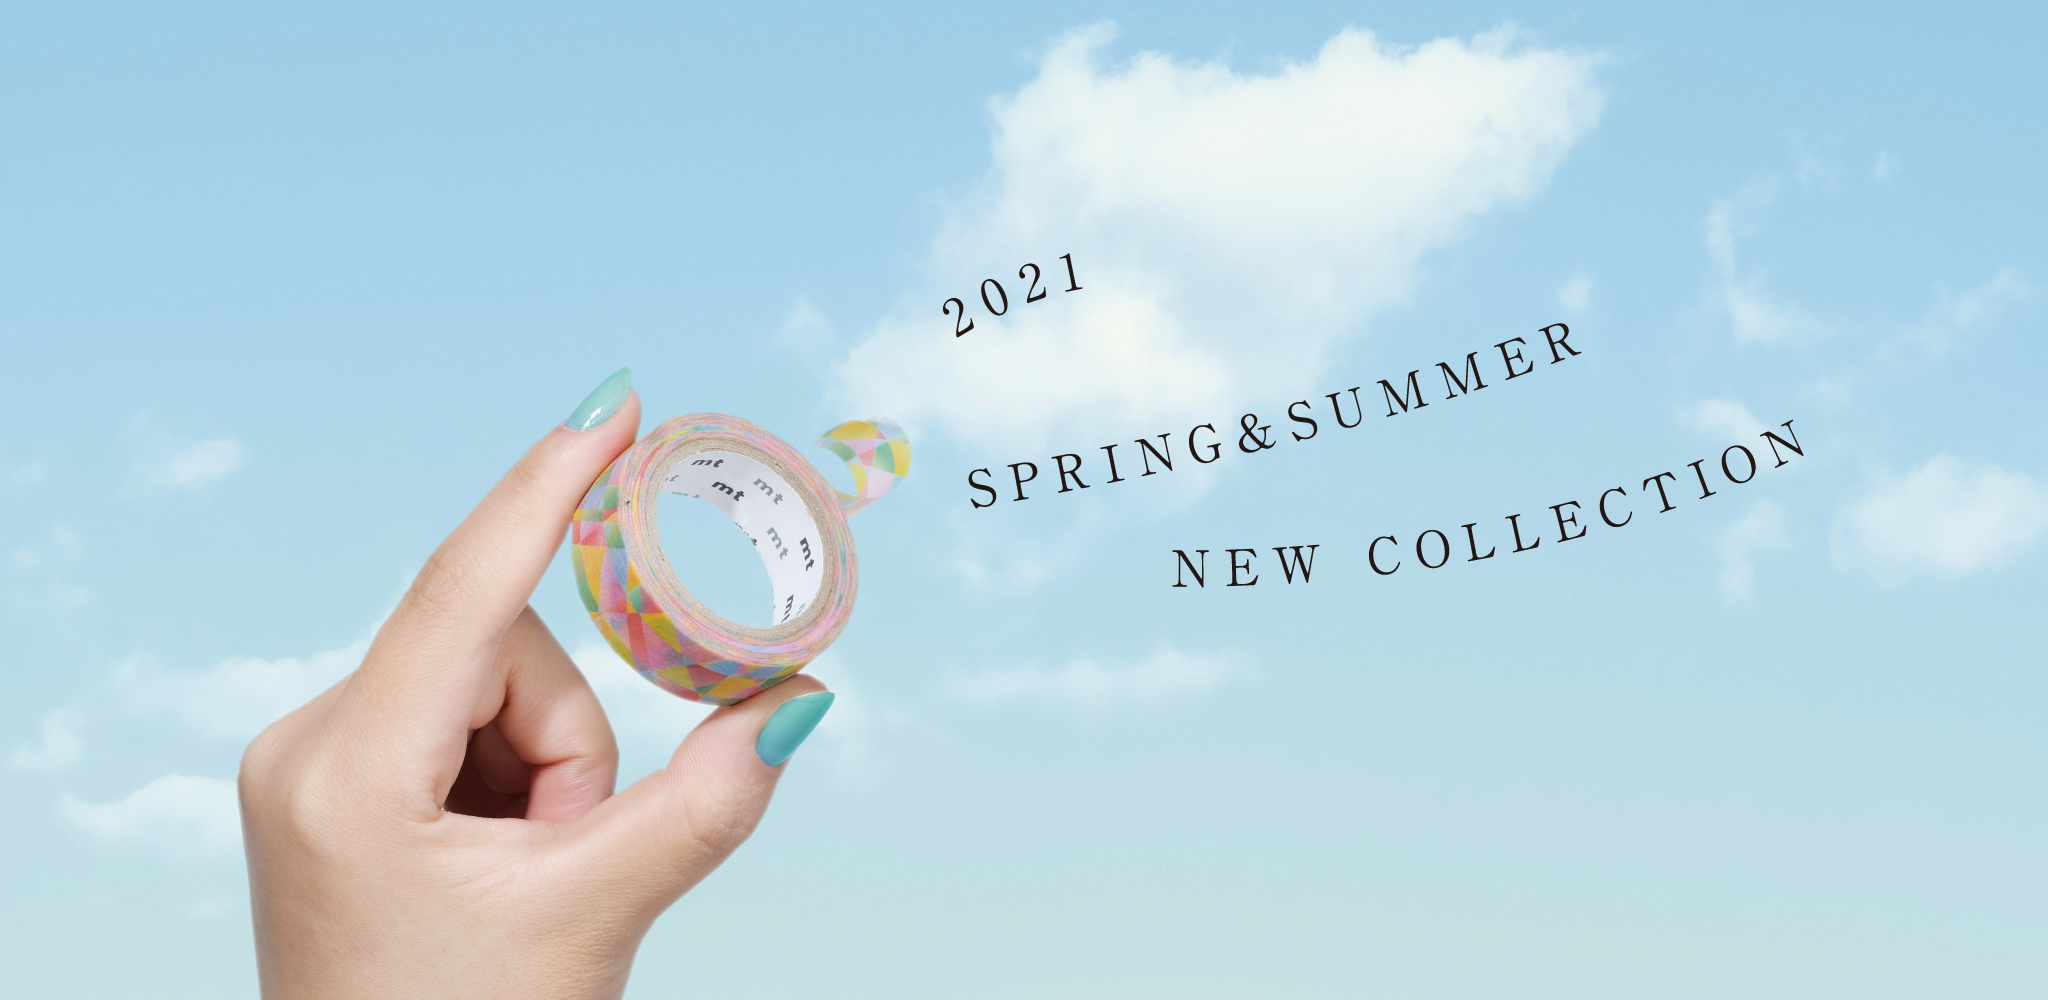 2021 SPRING&SUMMER NEW COLLECTION